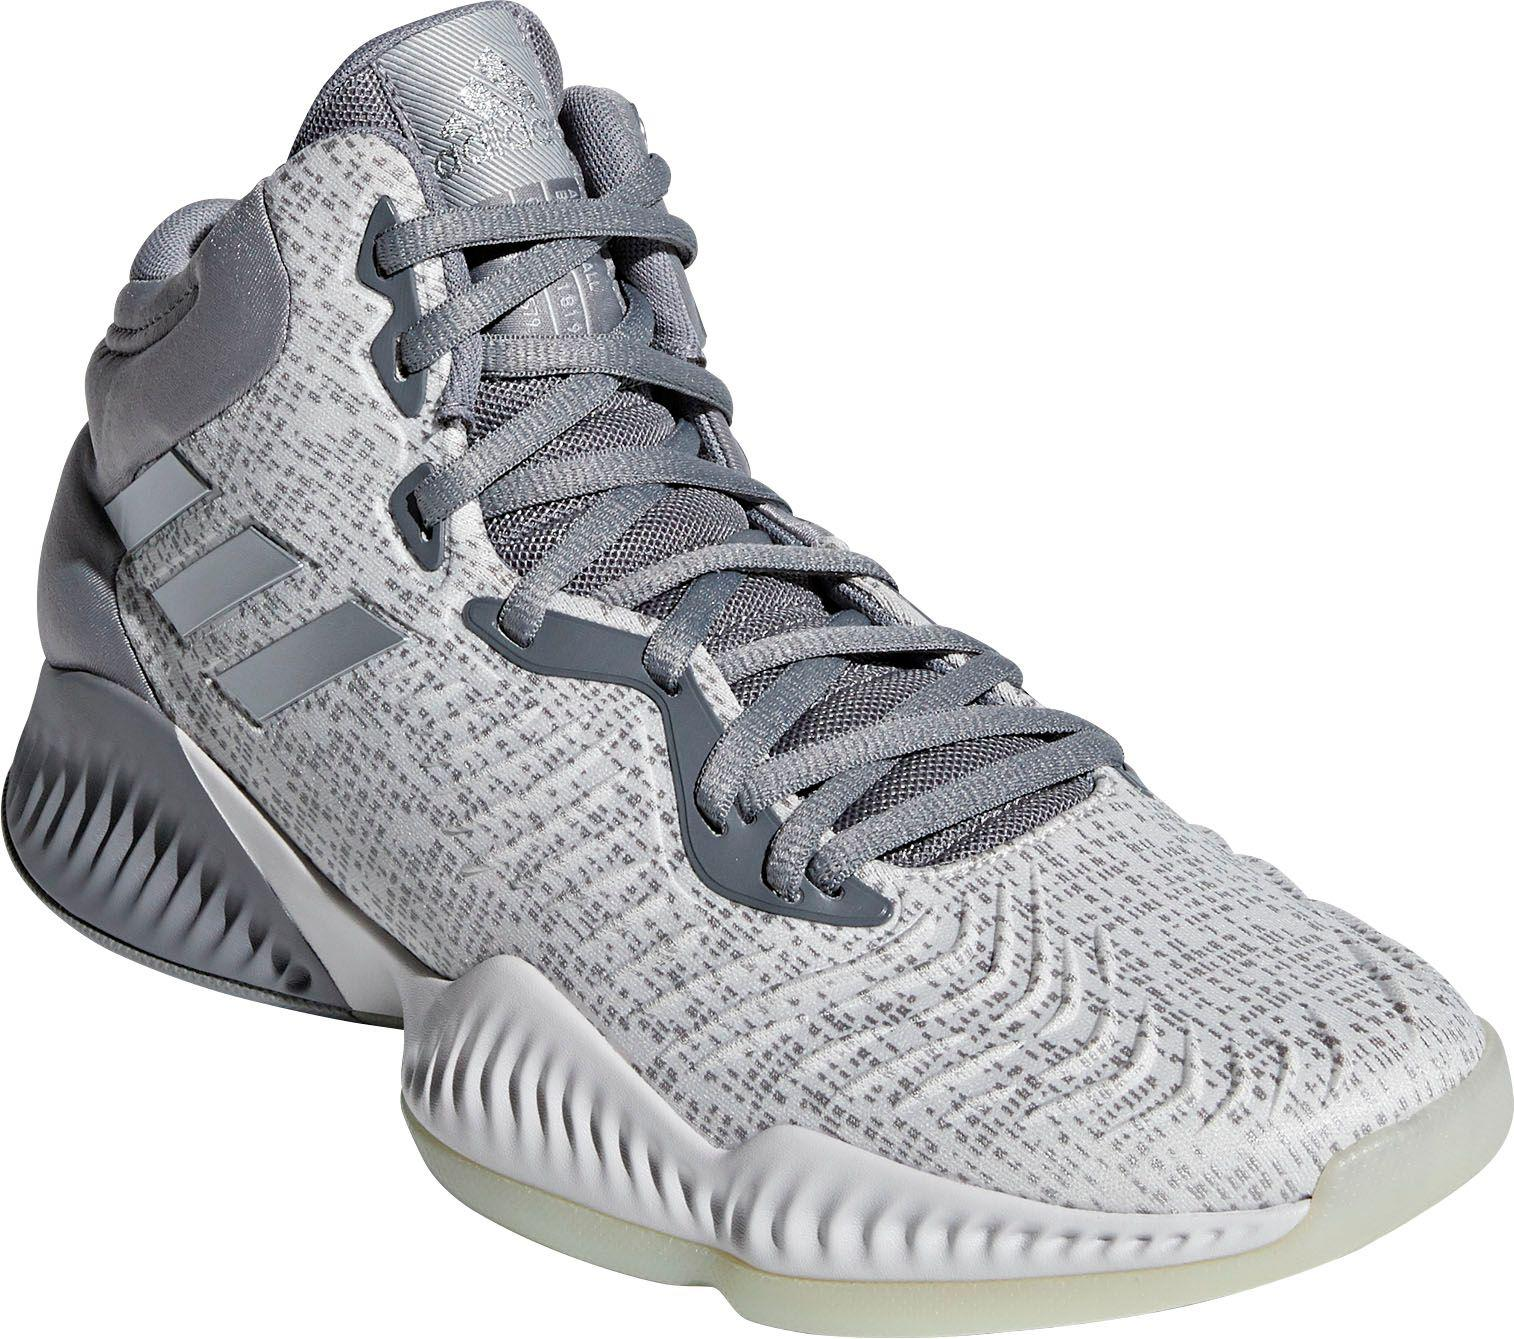 5631bc5f130d adidas Mad Bounce 2018 Basketball Shoes in Gray for Men - Lyst